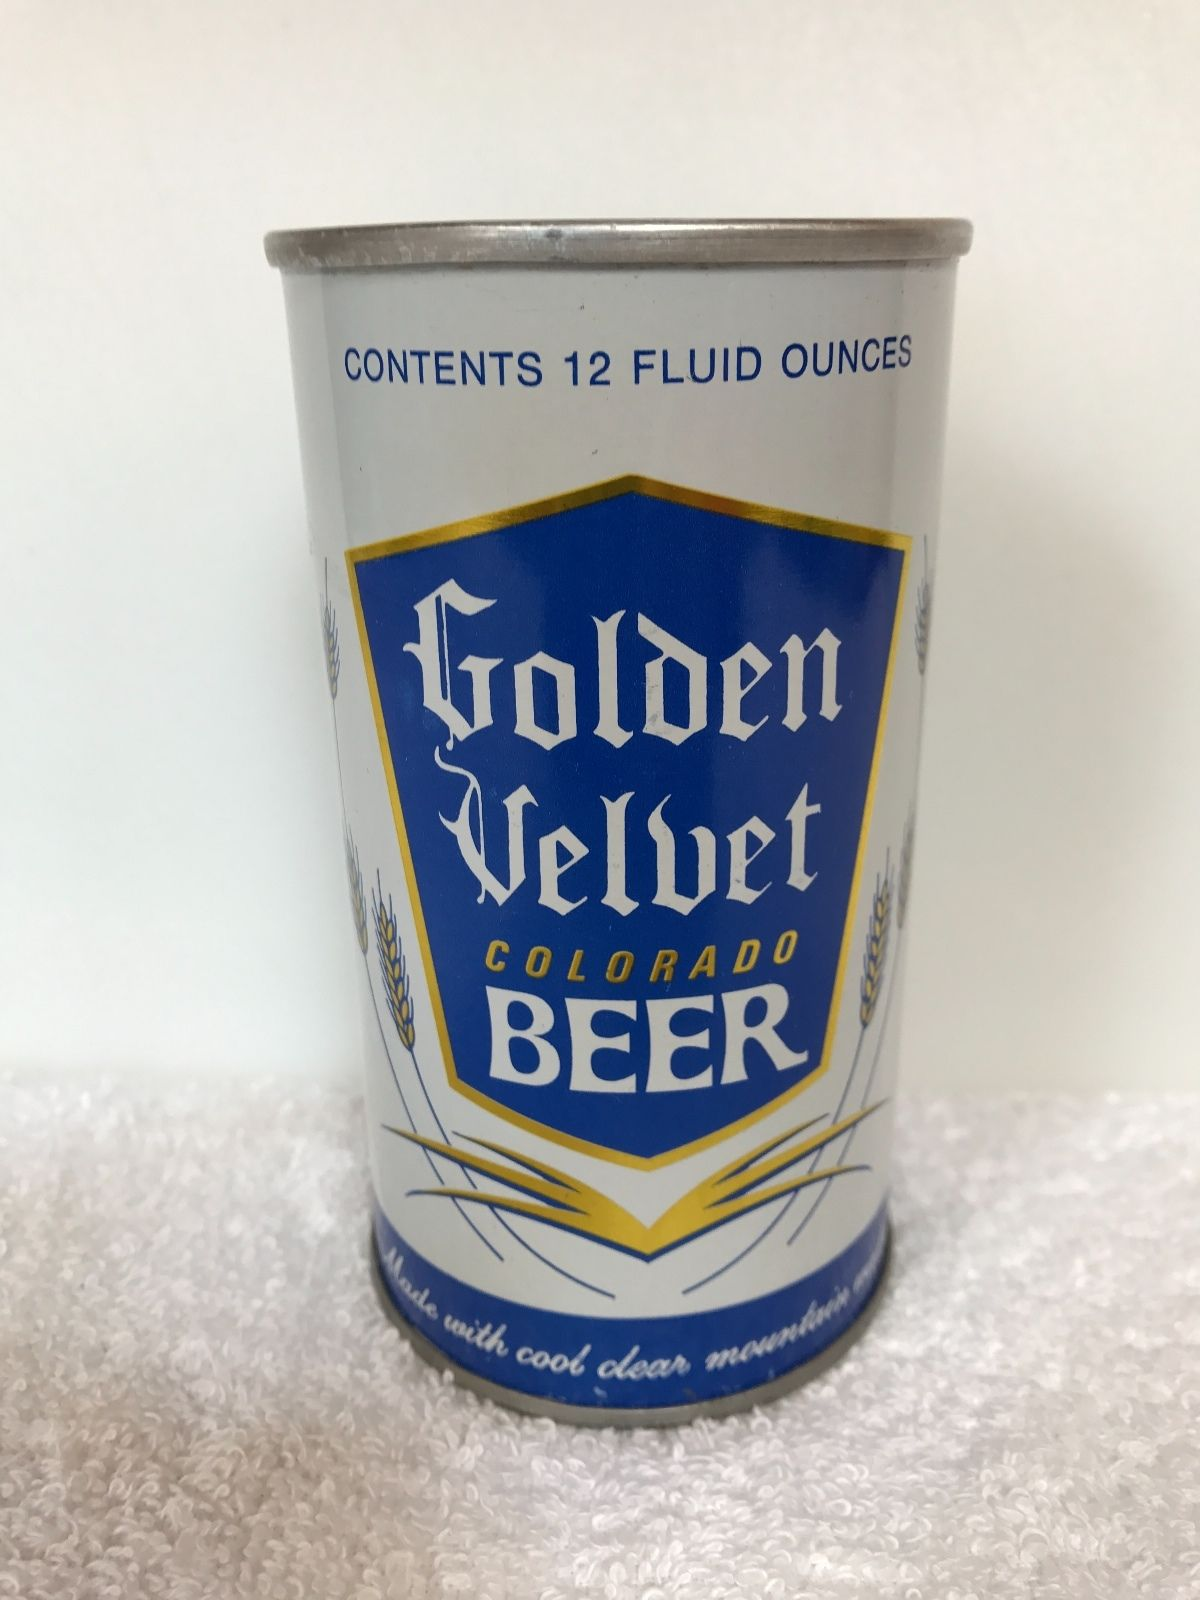 Tivoli Golden Tower Beer Nice To Golden Velvet Beer Ring Tab Can Tivoli Brewing Co